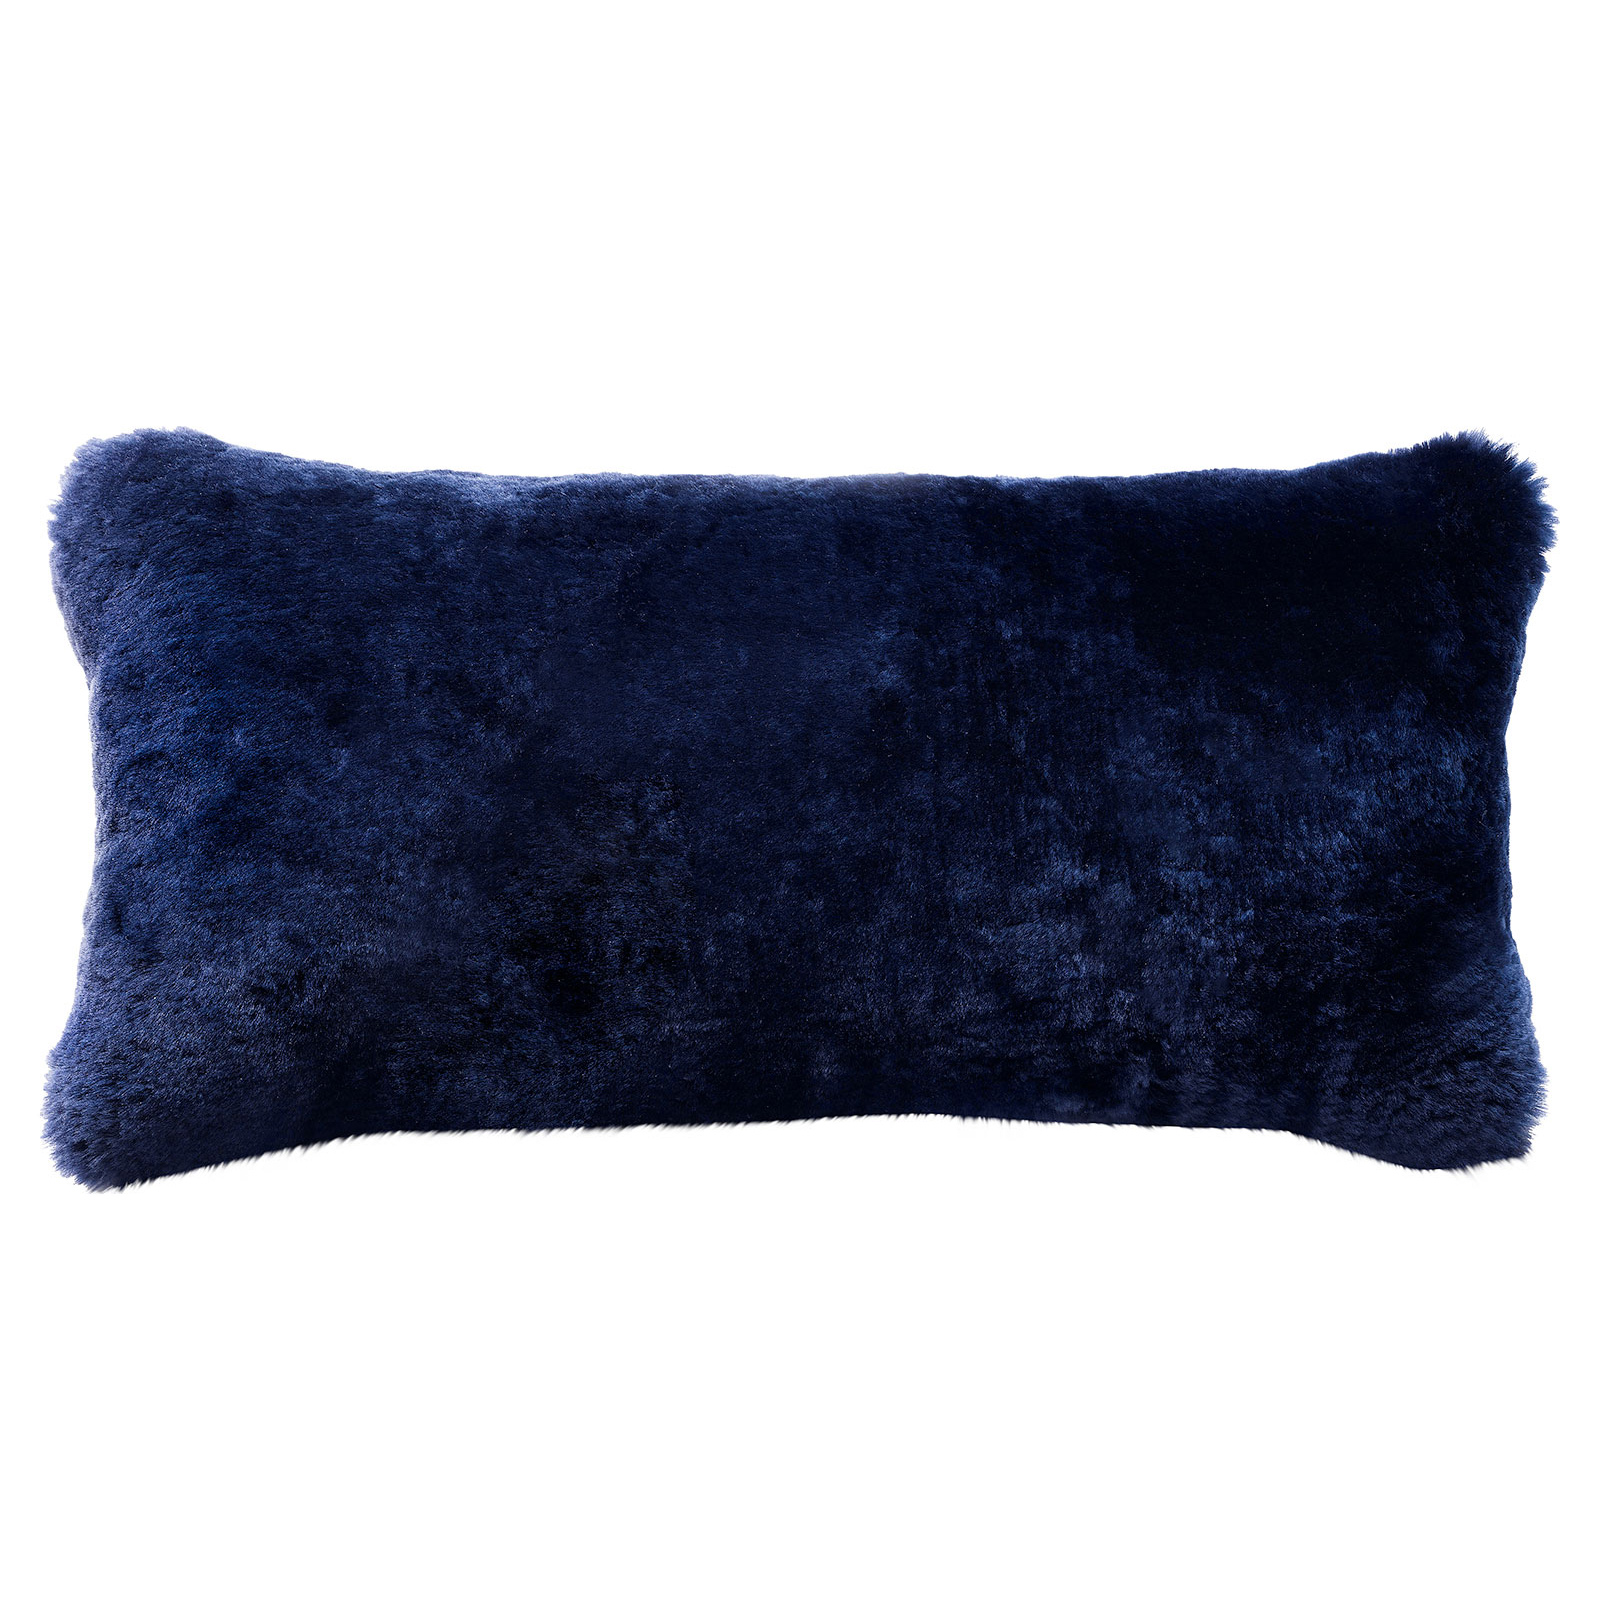 Argali Modern Navy Short Sheepskin Fur Lumbar Pillow - 11x22